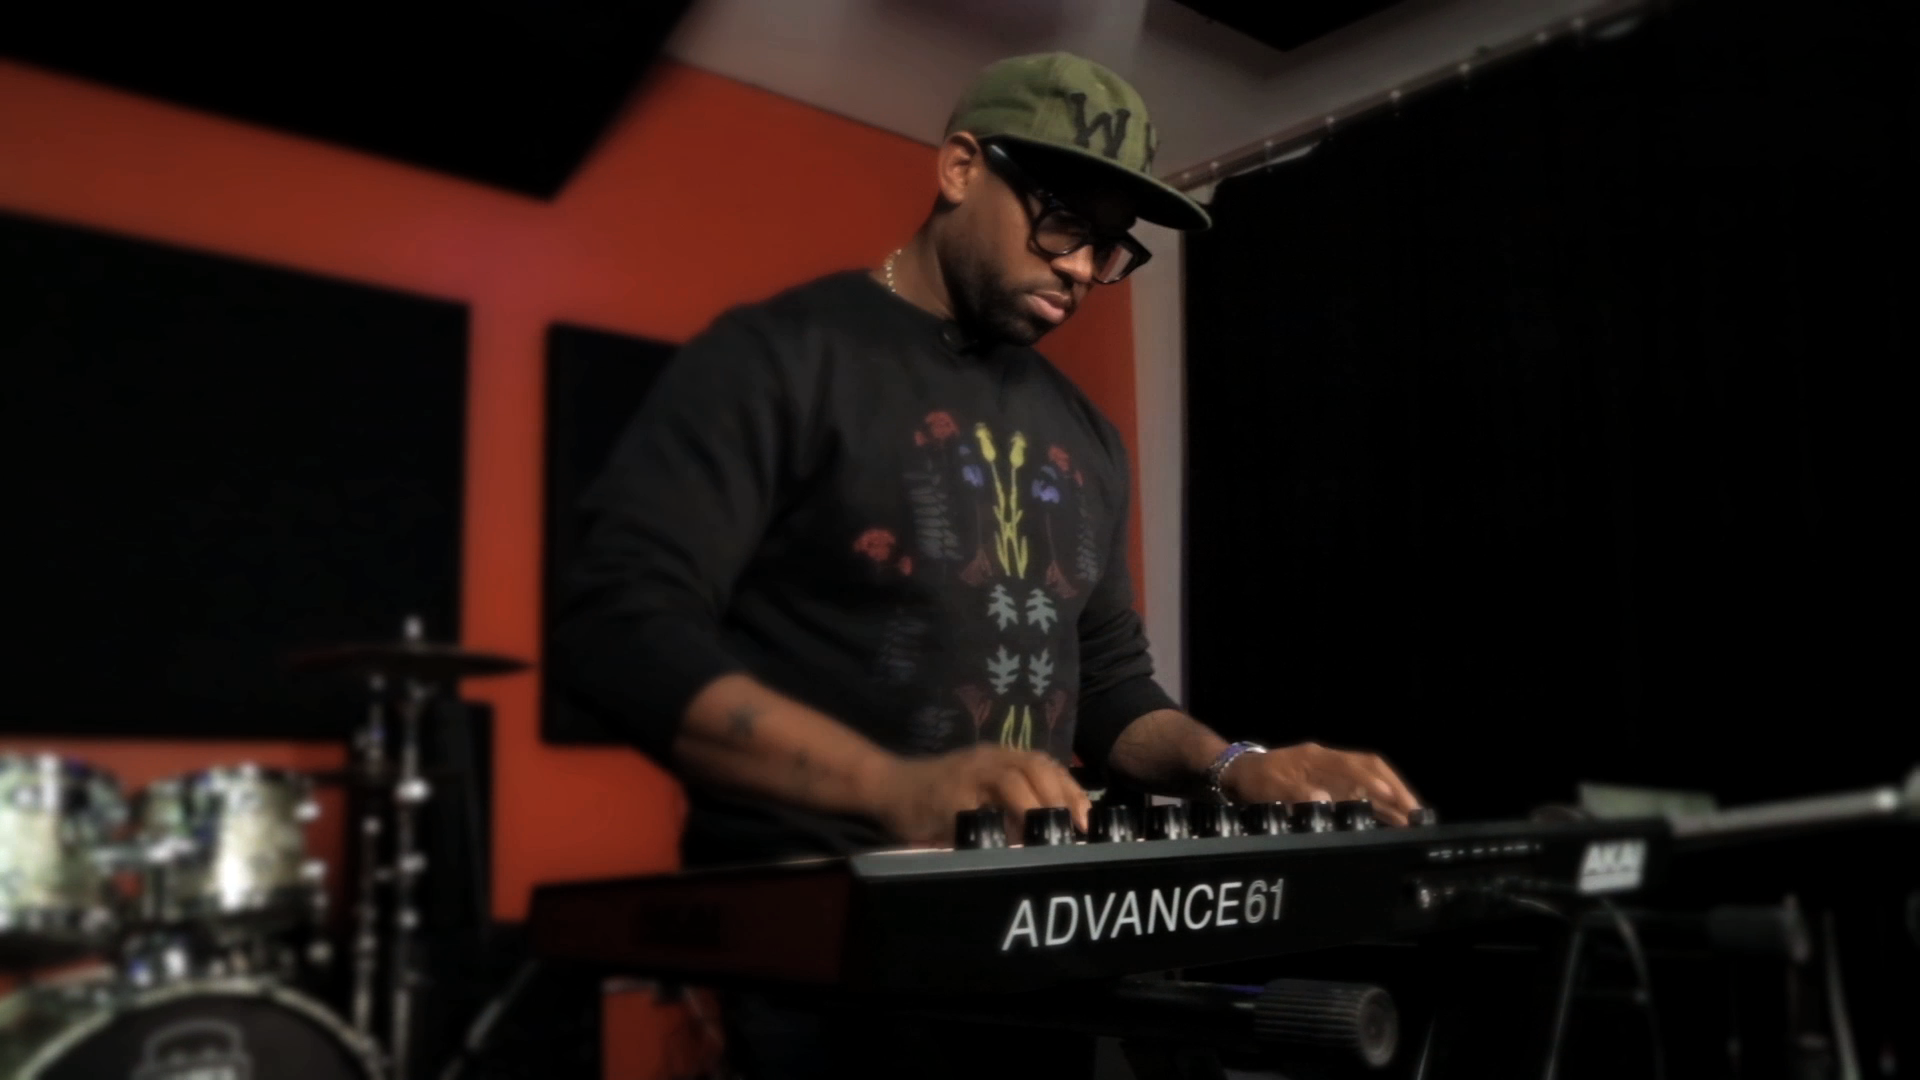 Akai Advance Teaser